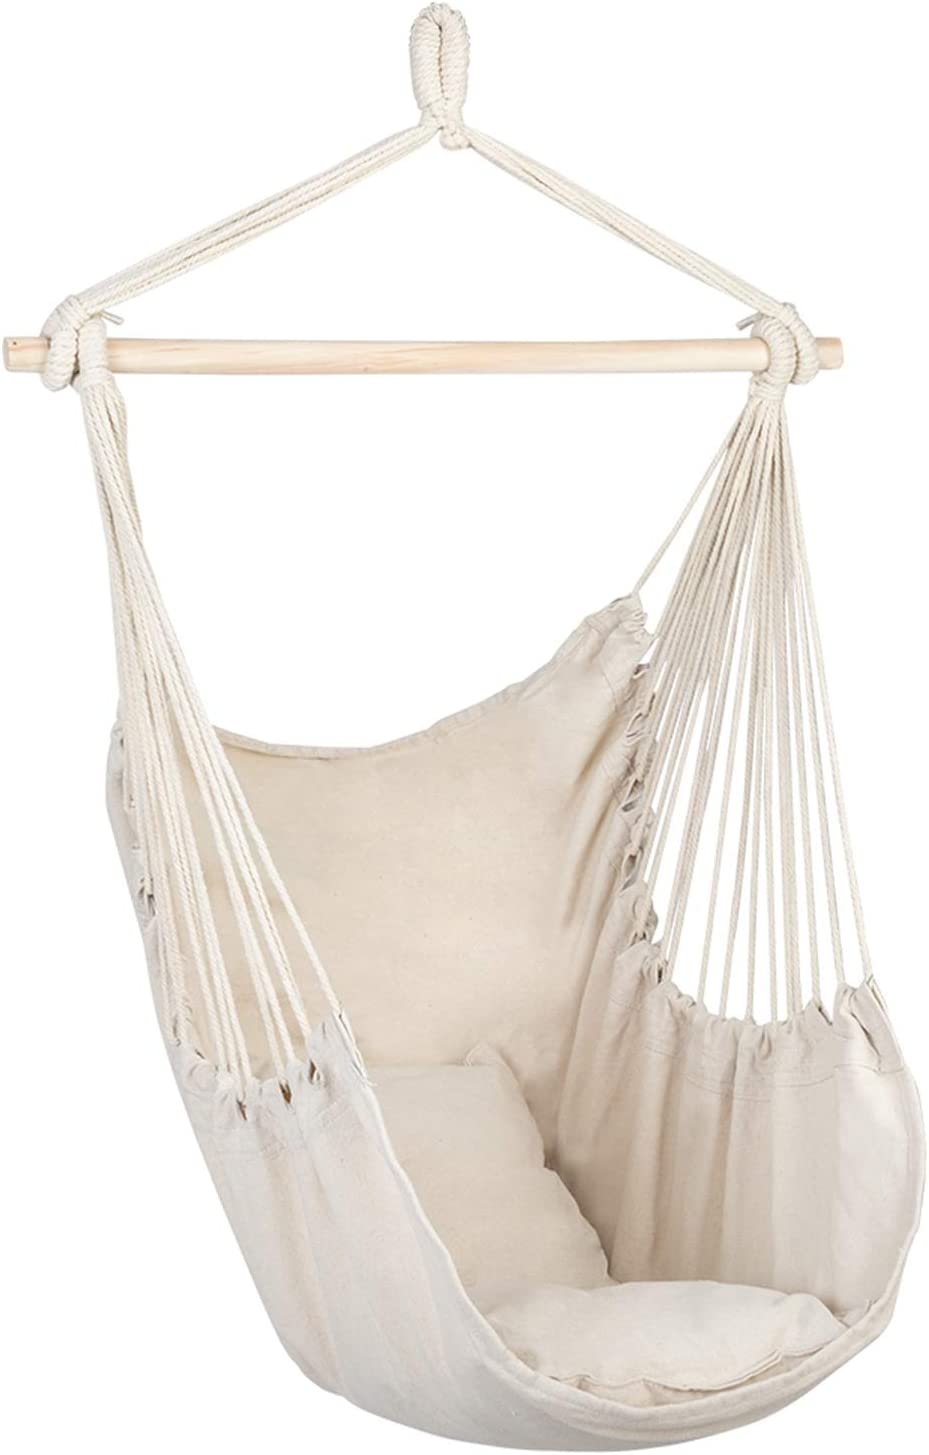 OTU Our shop most popular Distinctive Cotton Canvas Hanging Chair Rope Pillows Max 75% OFF with Be